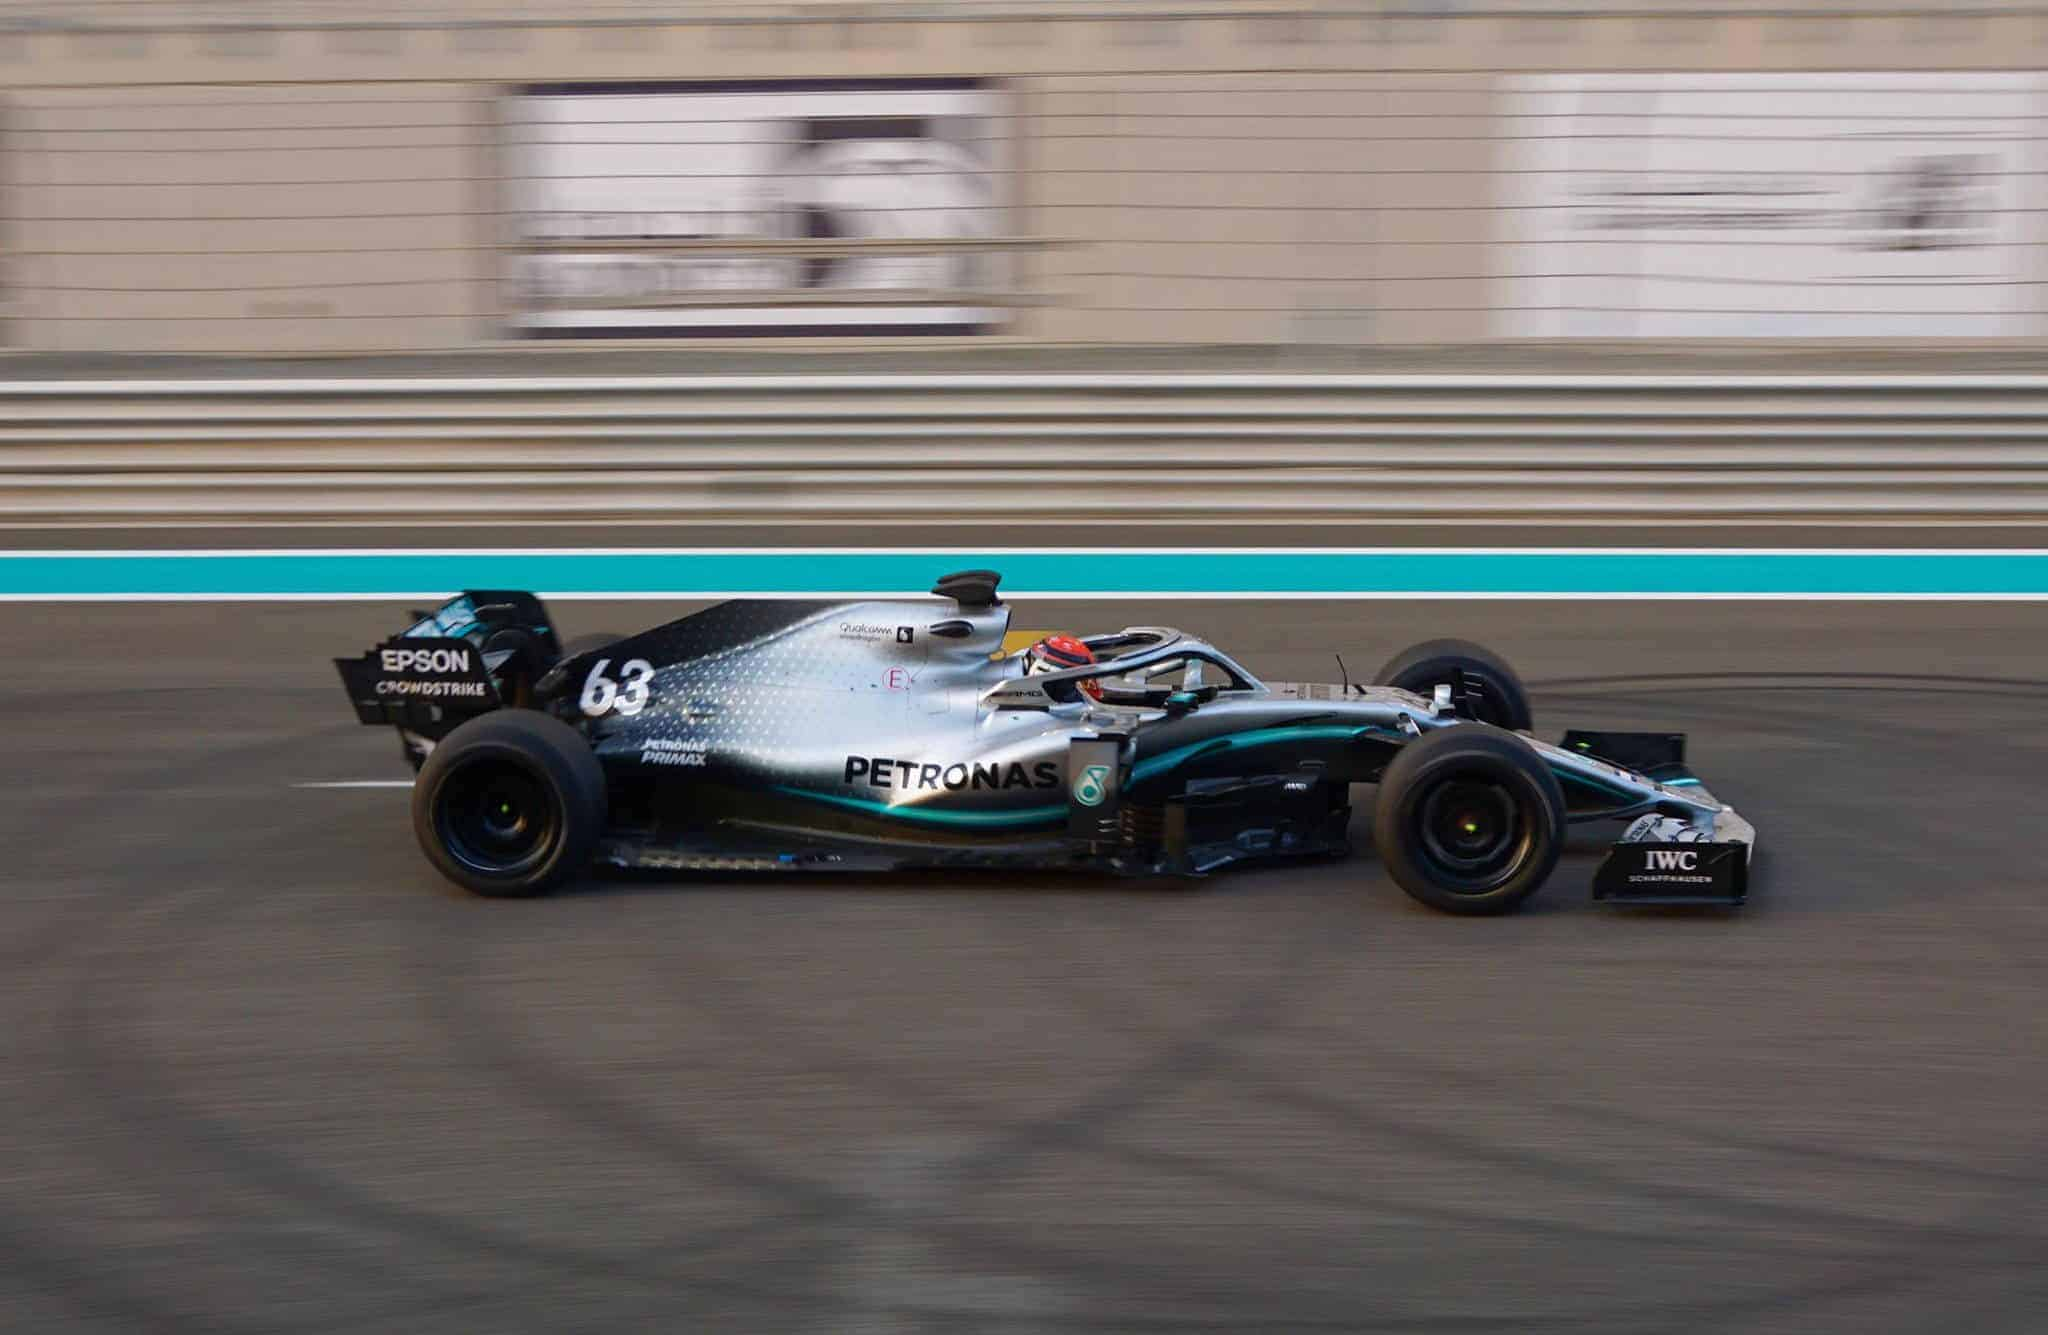 George Russell Mercedes F1 W10 18-inch wheels Abu Dhabi final test right side Pirelli Photo Pirelli